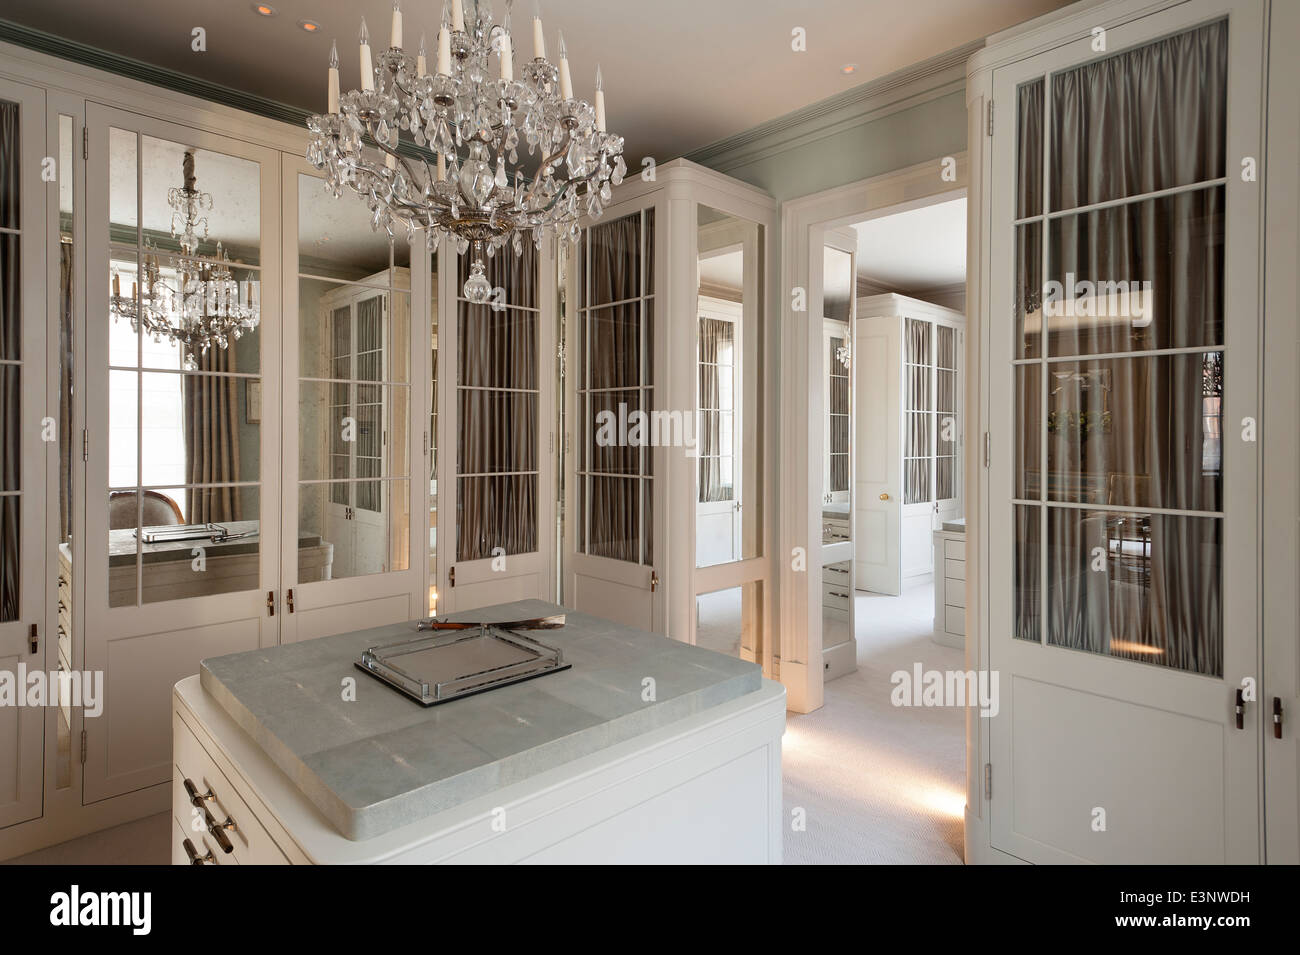 Cut Glass Chandelier In Dressing Room With Glass And